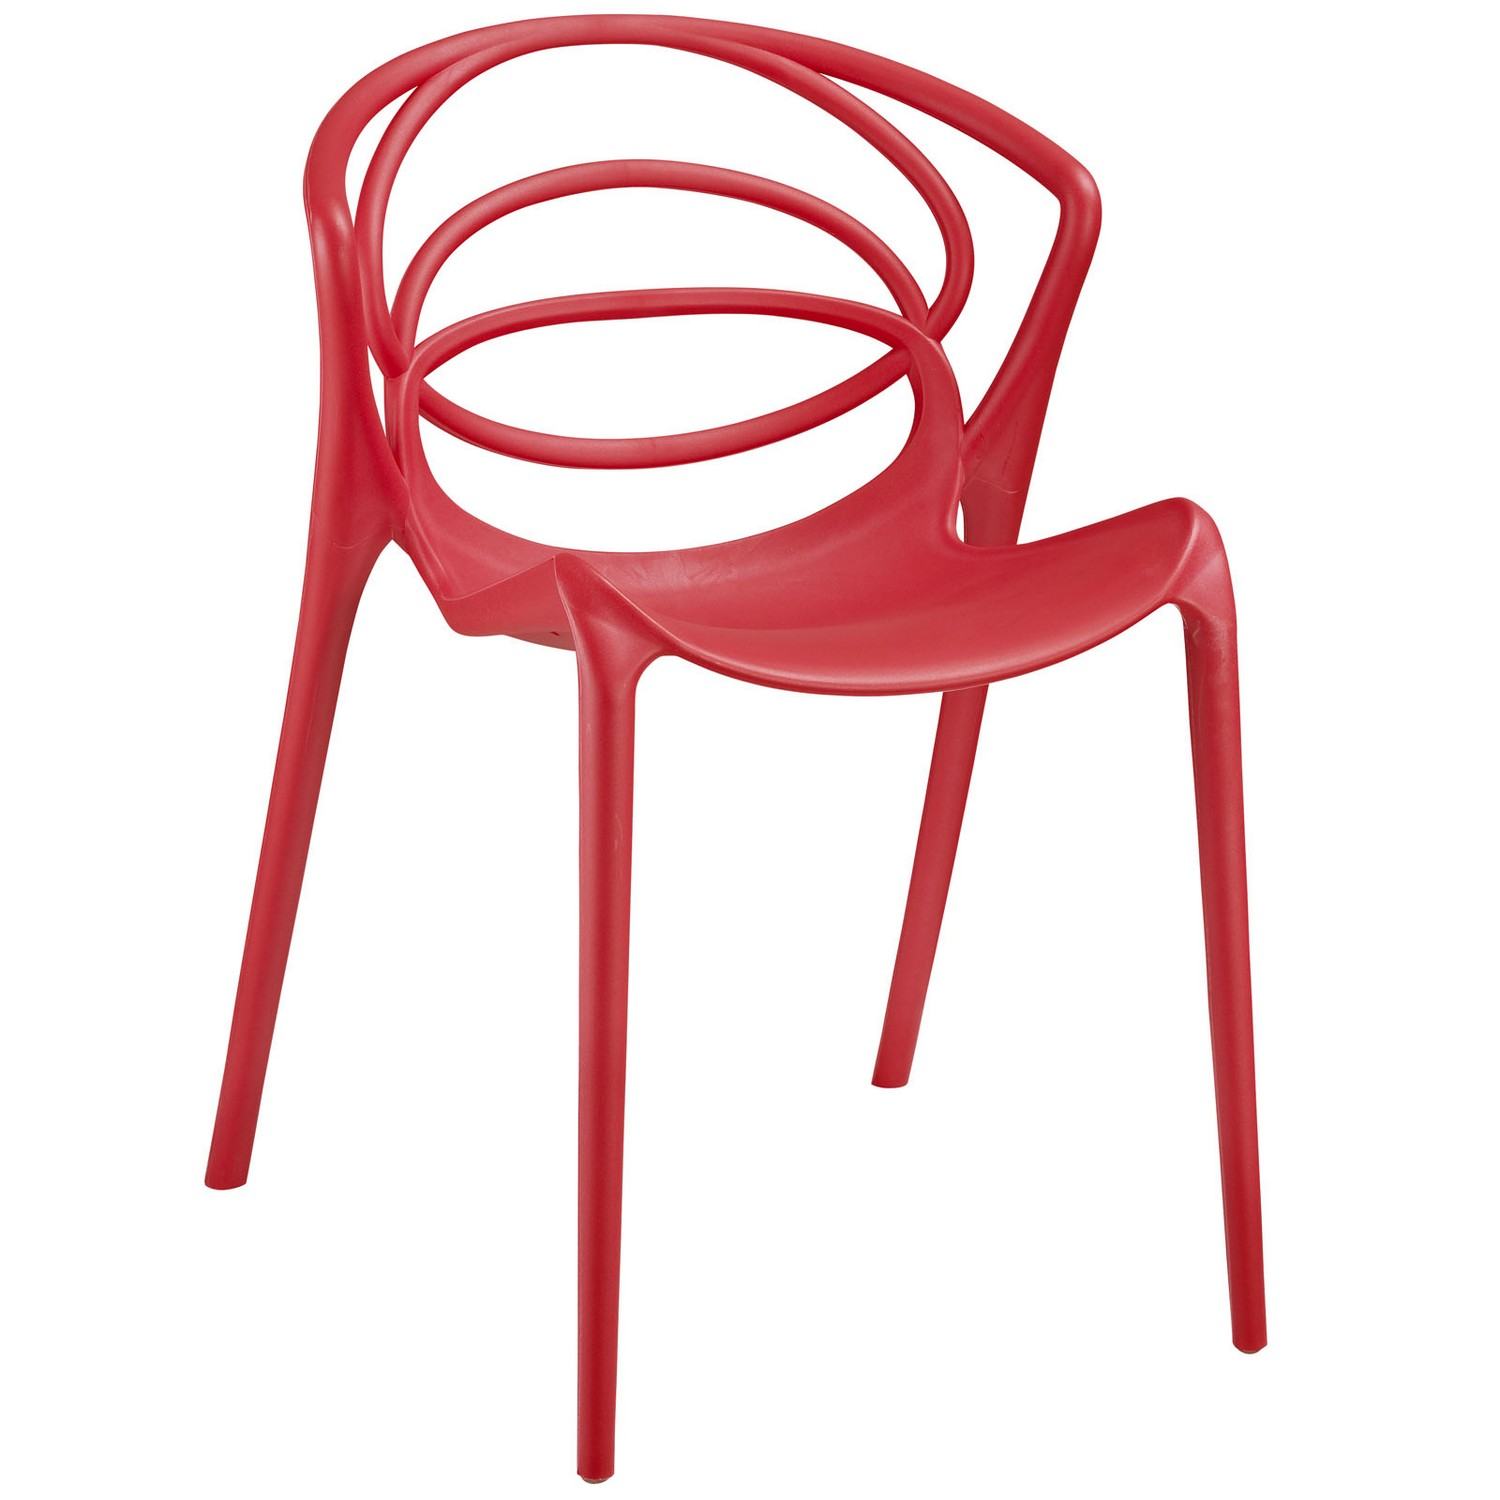 Modway Locus Dining Side Chair - Red